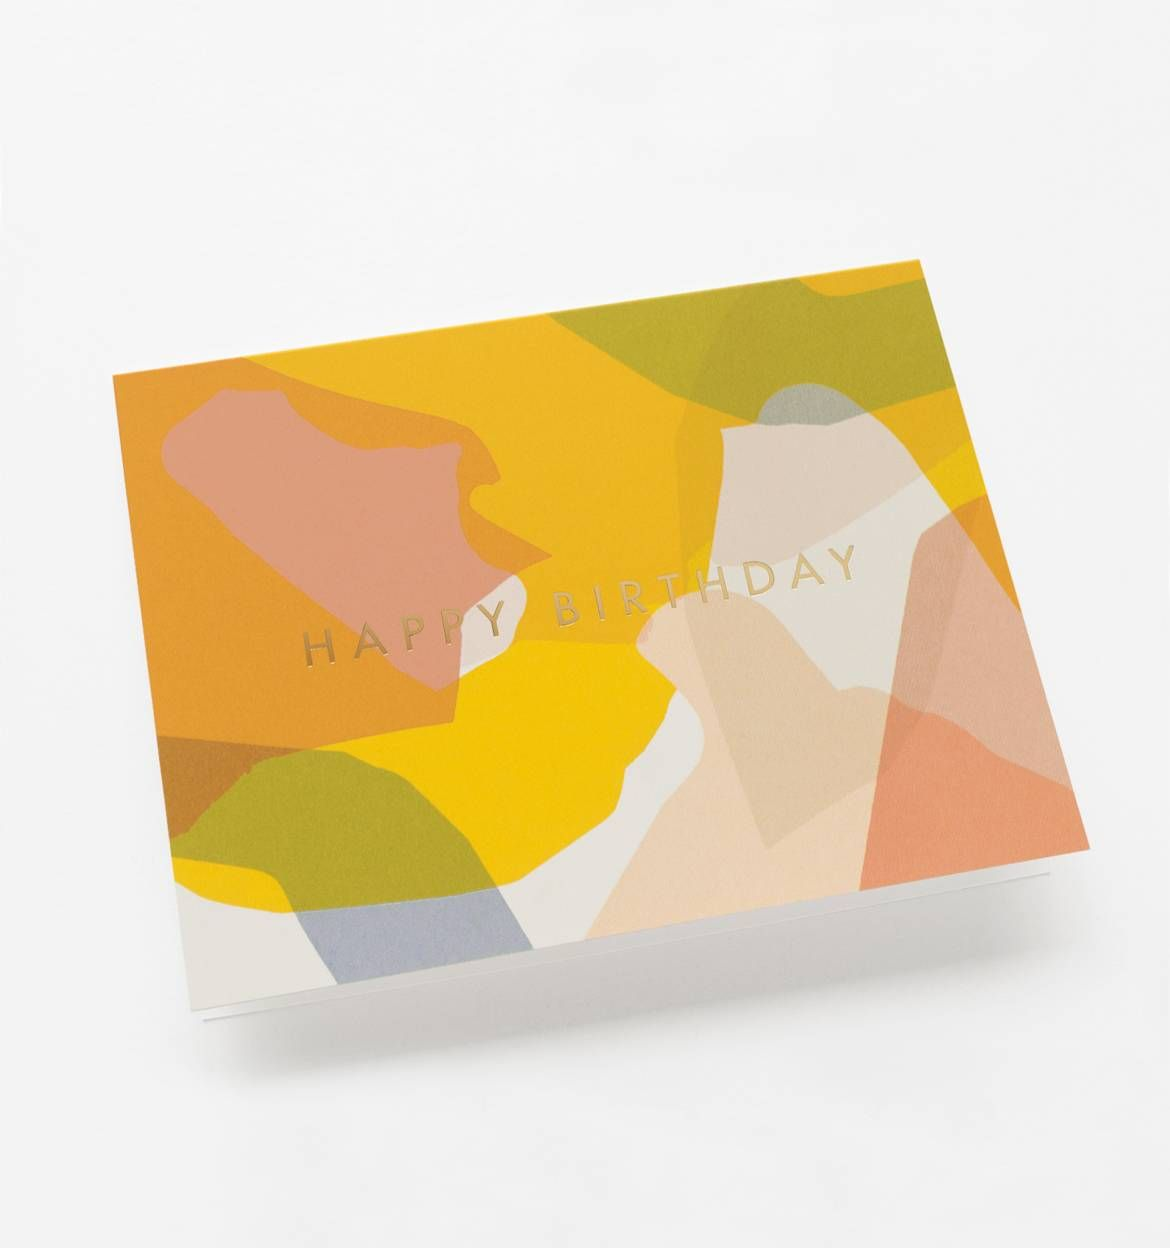 Modern Birthday Available as a Single Folded Card or Boxed Set of 8